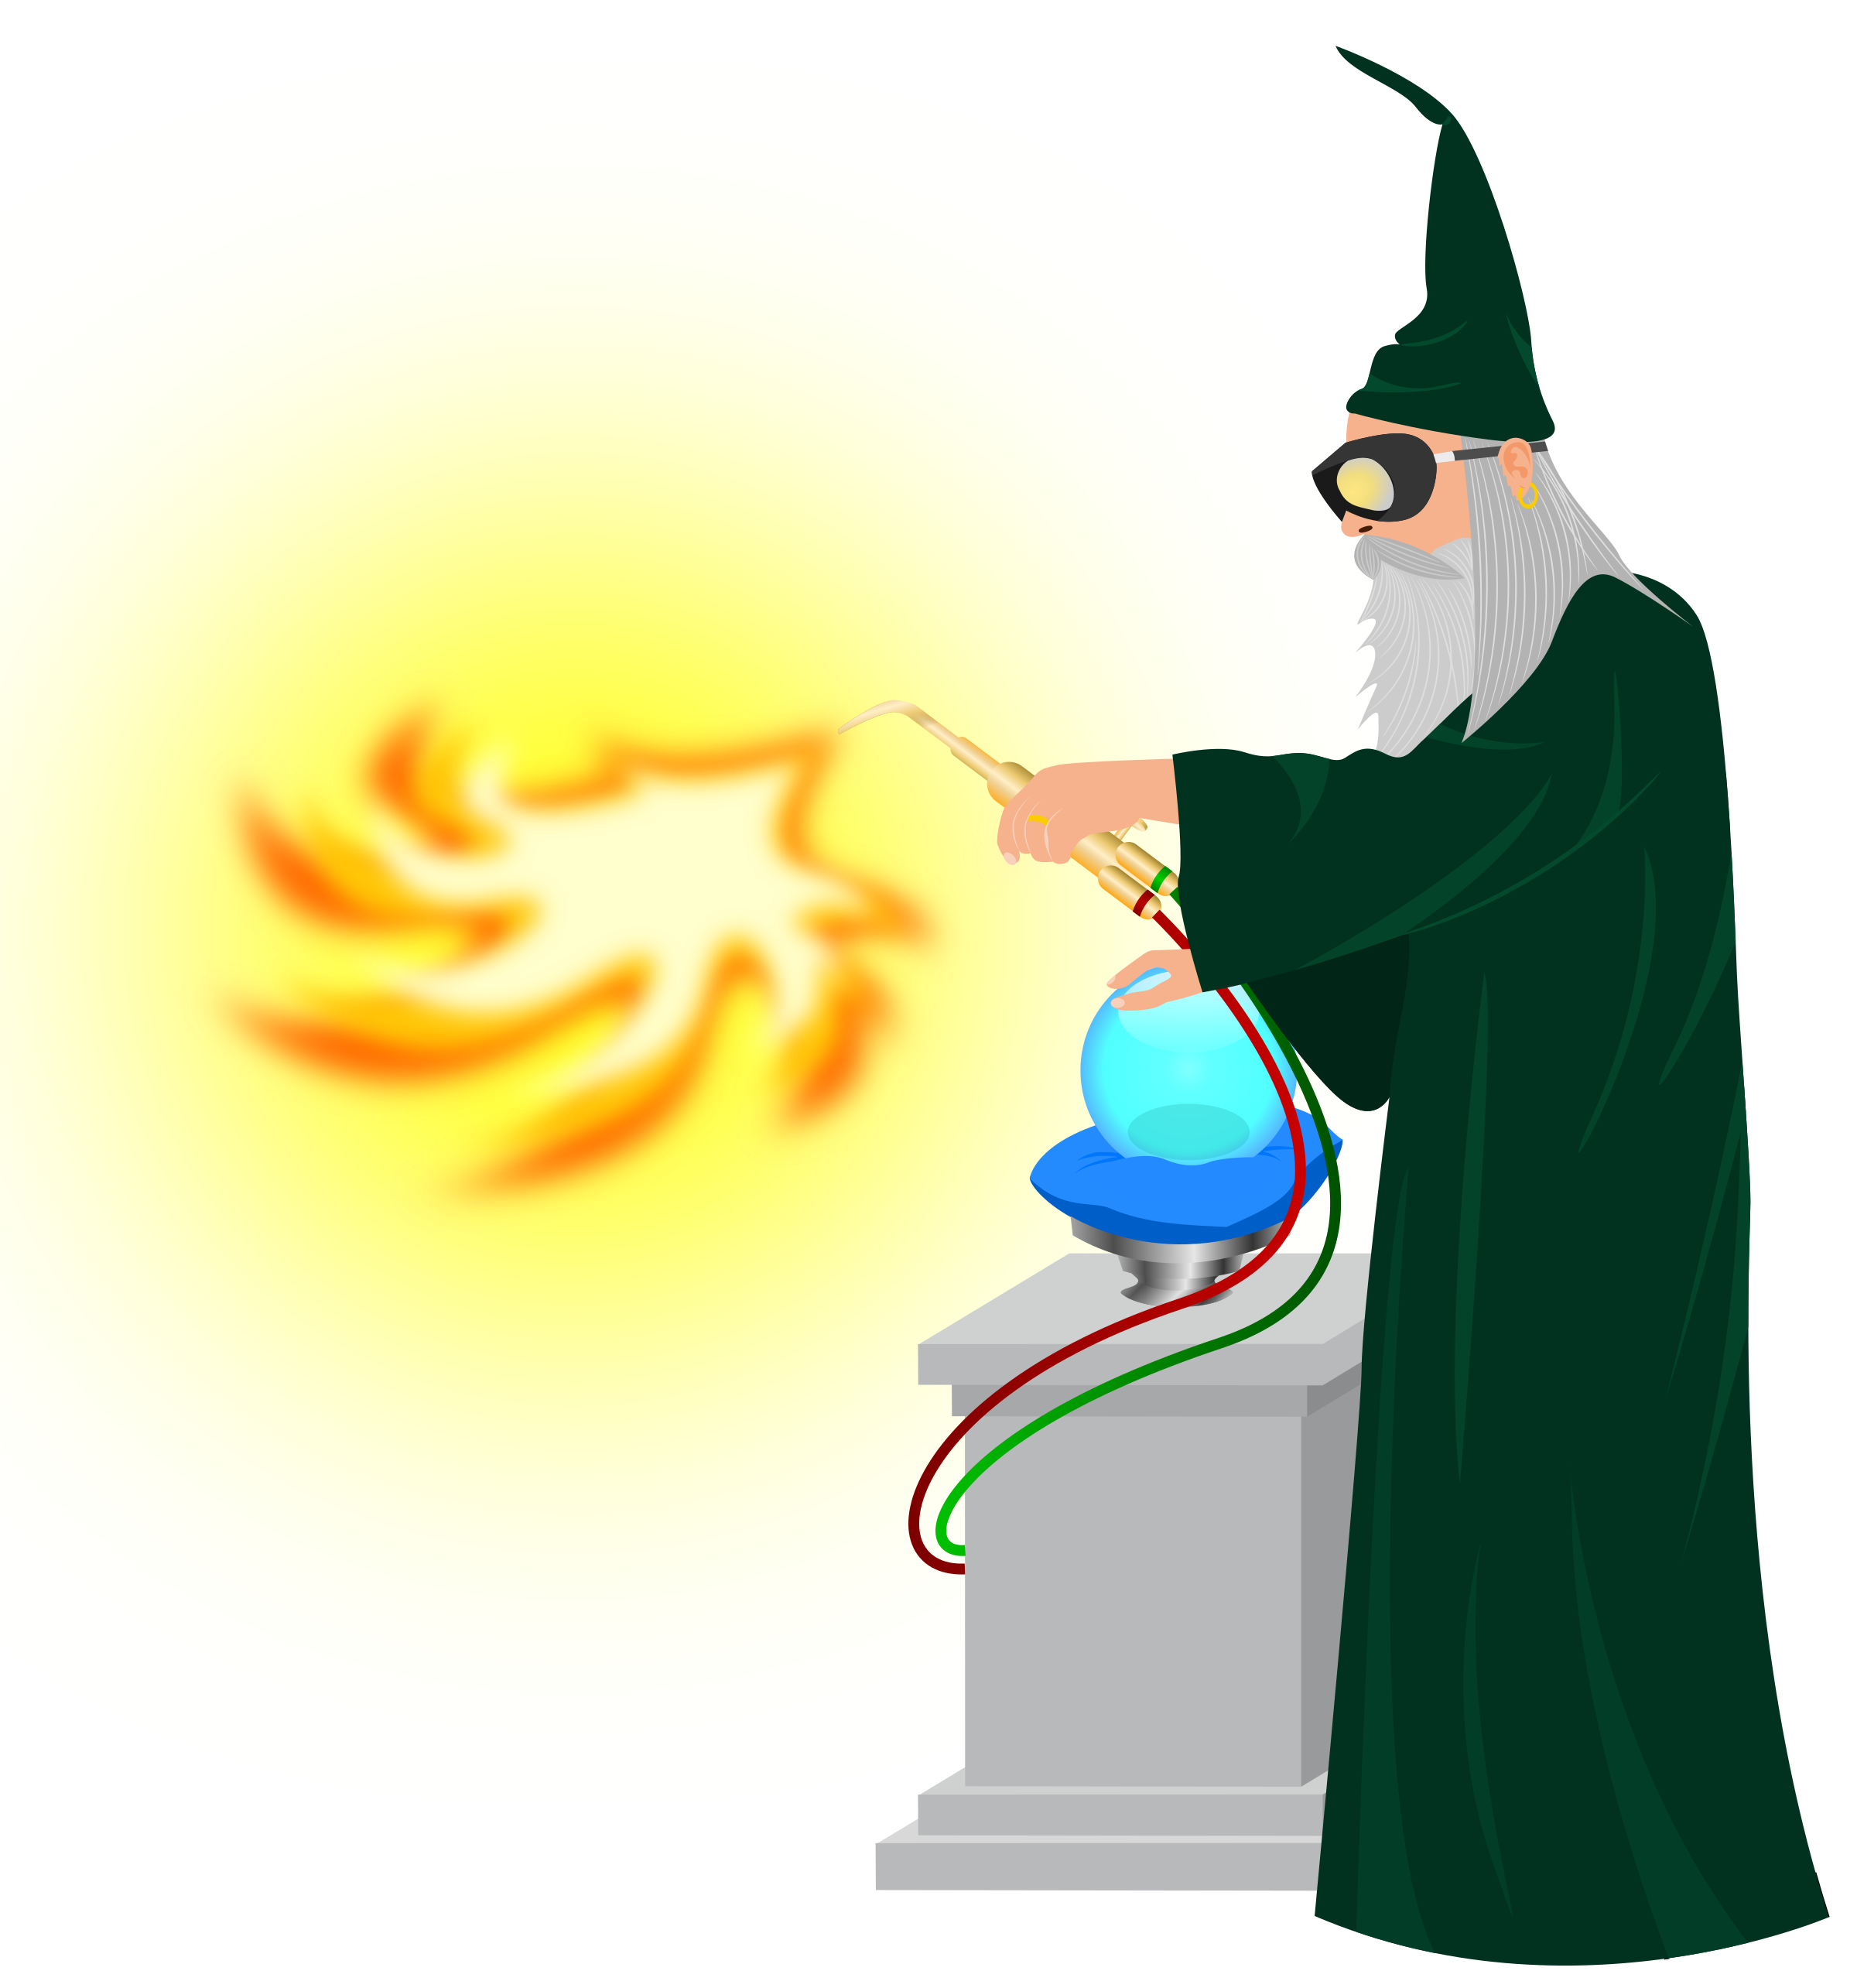 Welding clipart blowtorch. Heat wizard